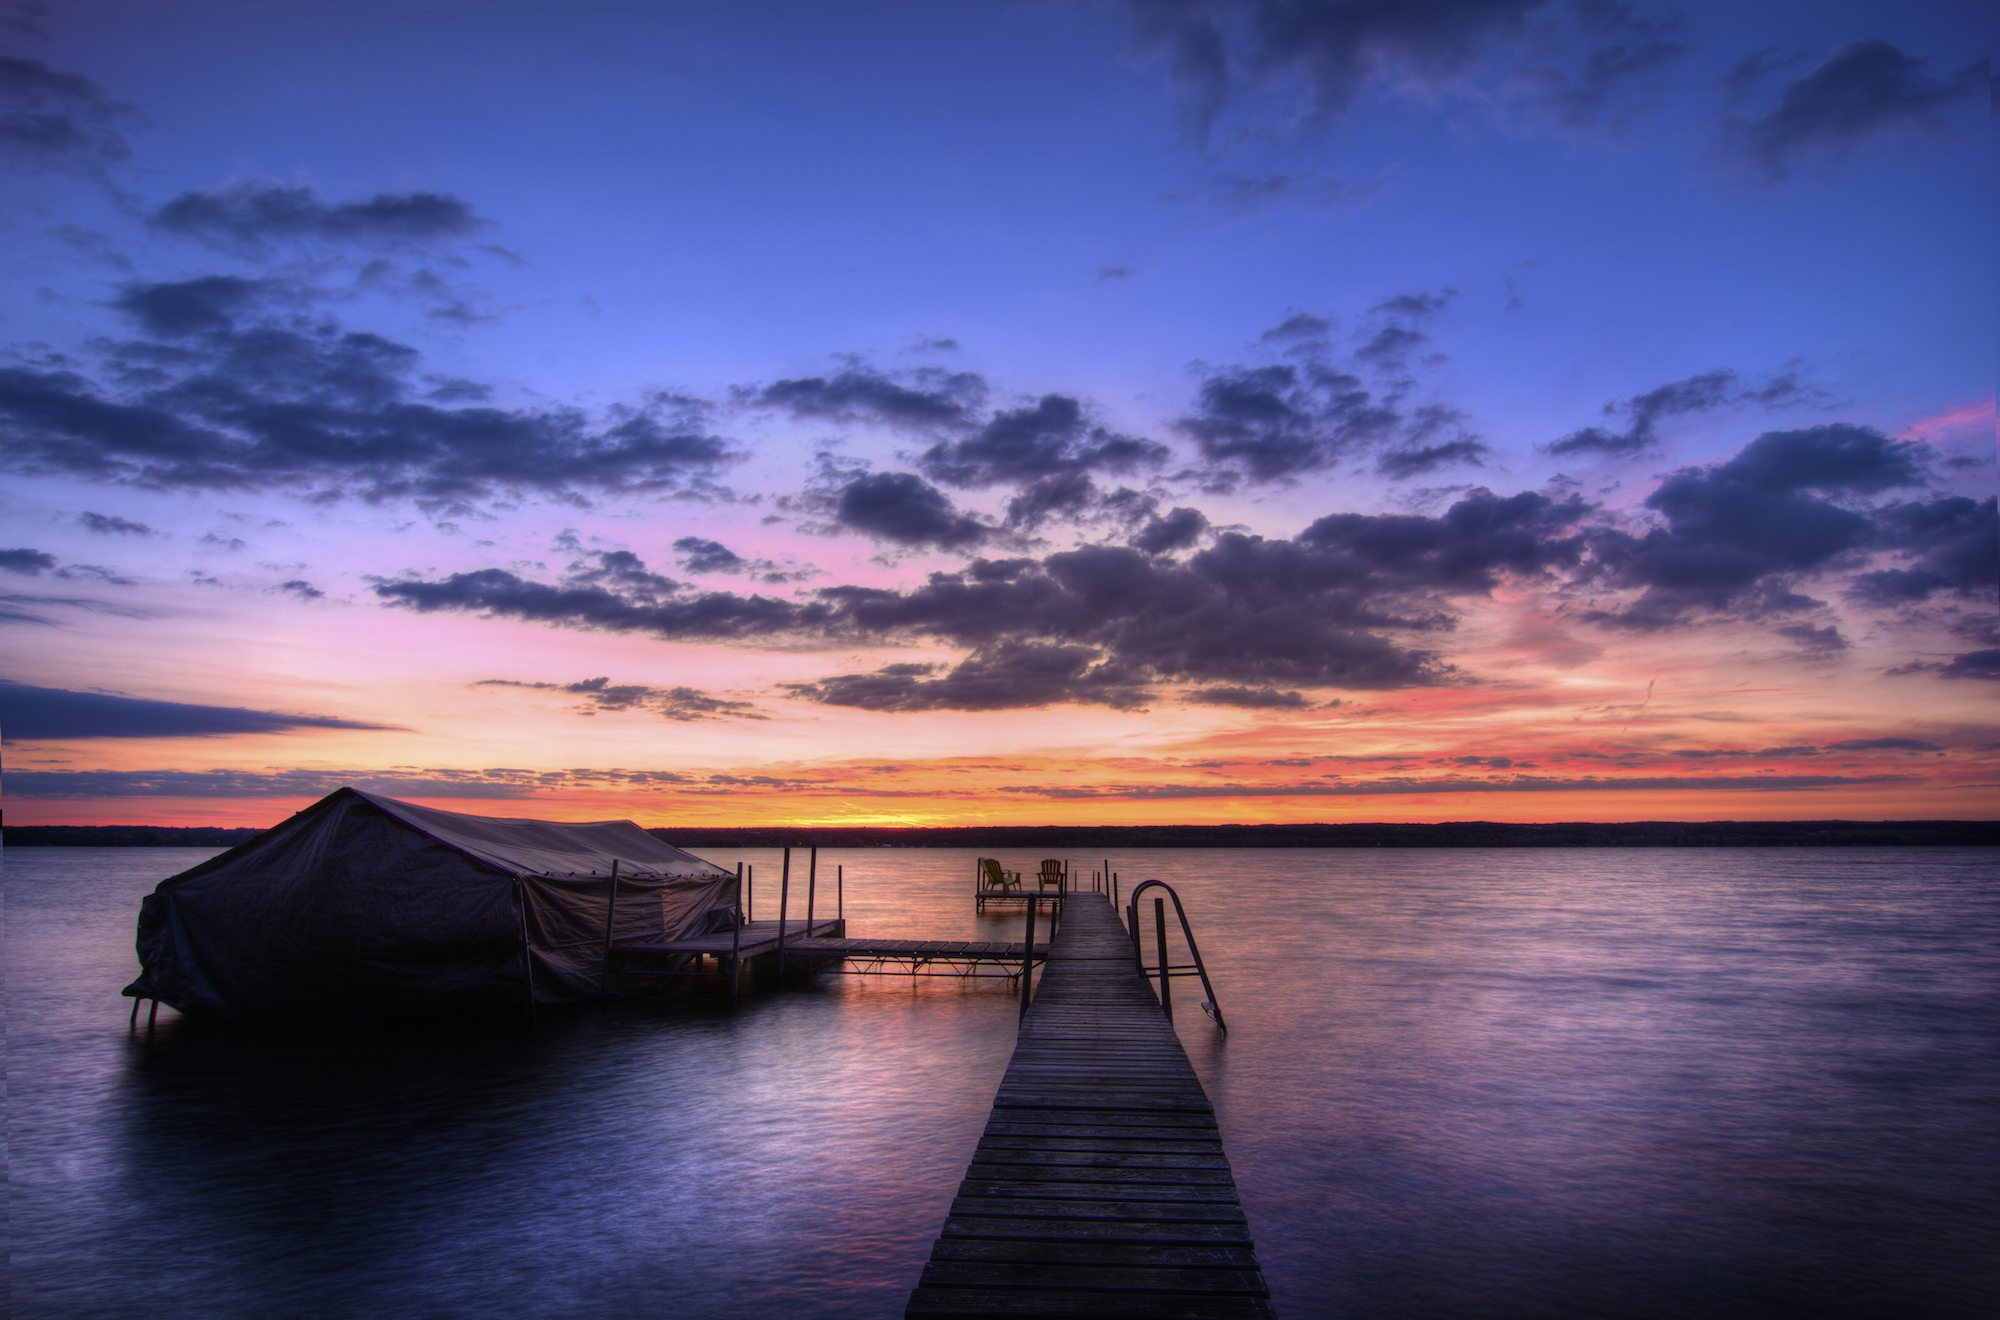 Fall in Love with the Finger Lakes (Don't Say We Didn't Warn You)